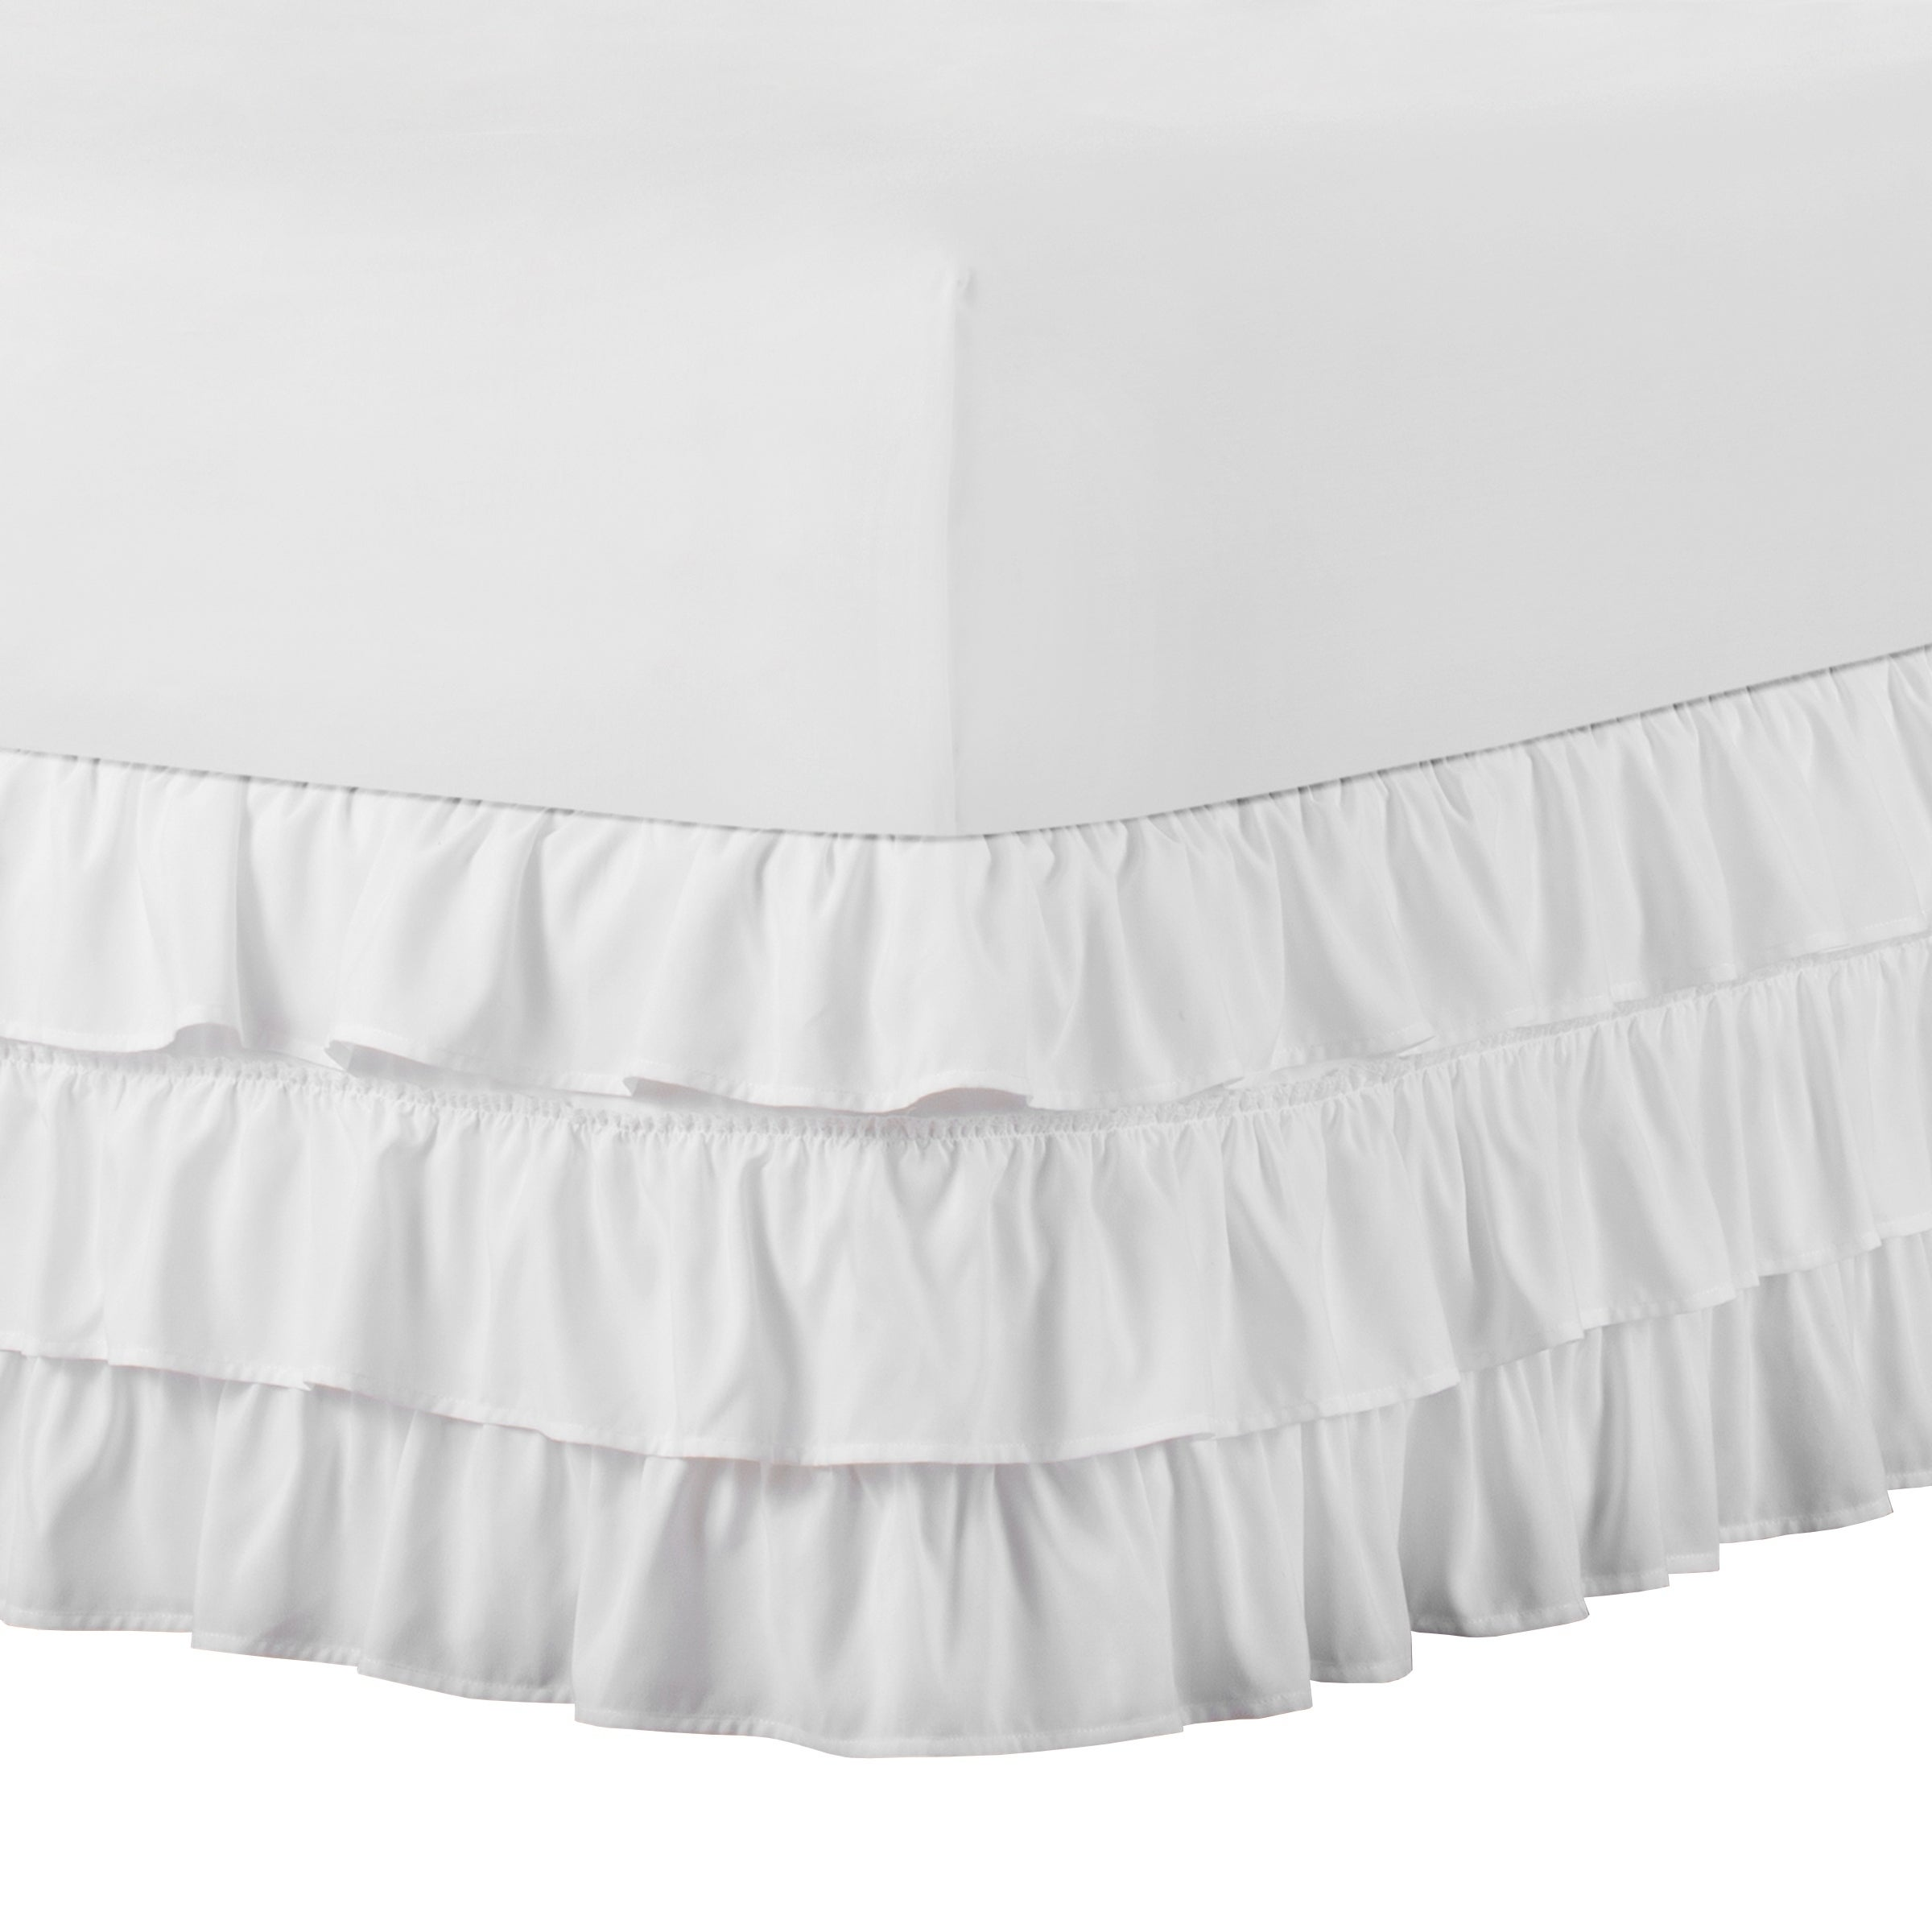 "Waterfall 3-Layer Ruffled Bed skirt 14/"" Drop"